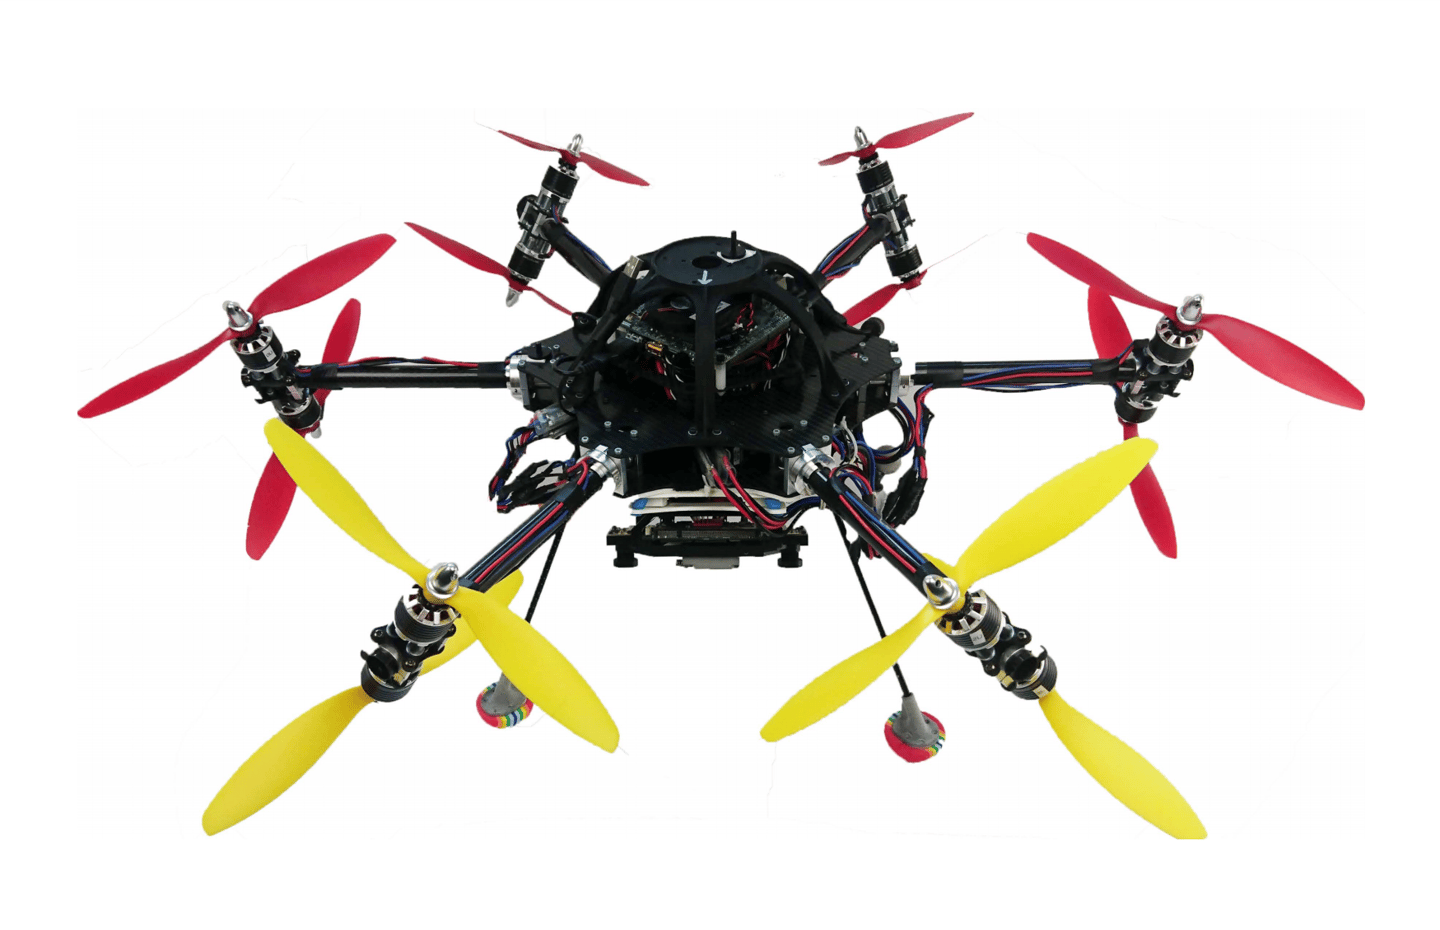 Image of the prototype system, with six 360-degree rotating arms giving this 12-rotor drone the capability to hover and fly in any orientation